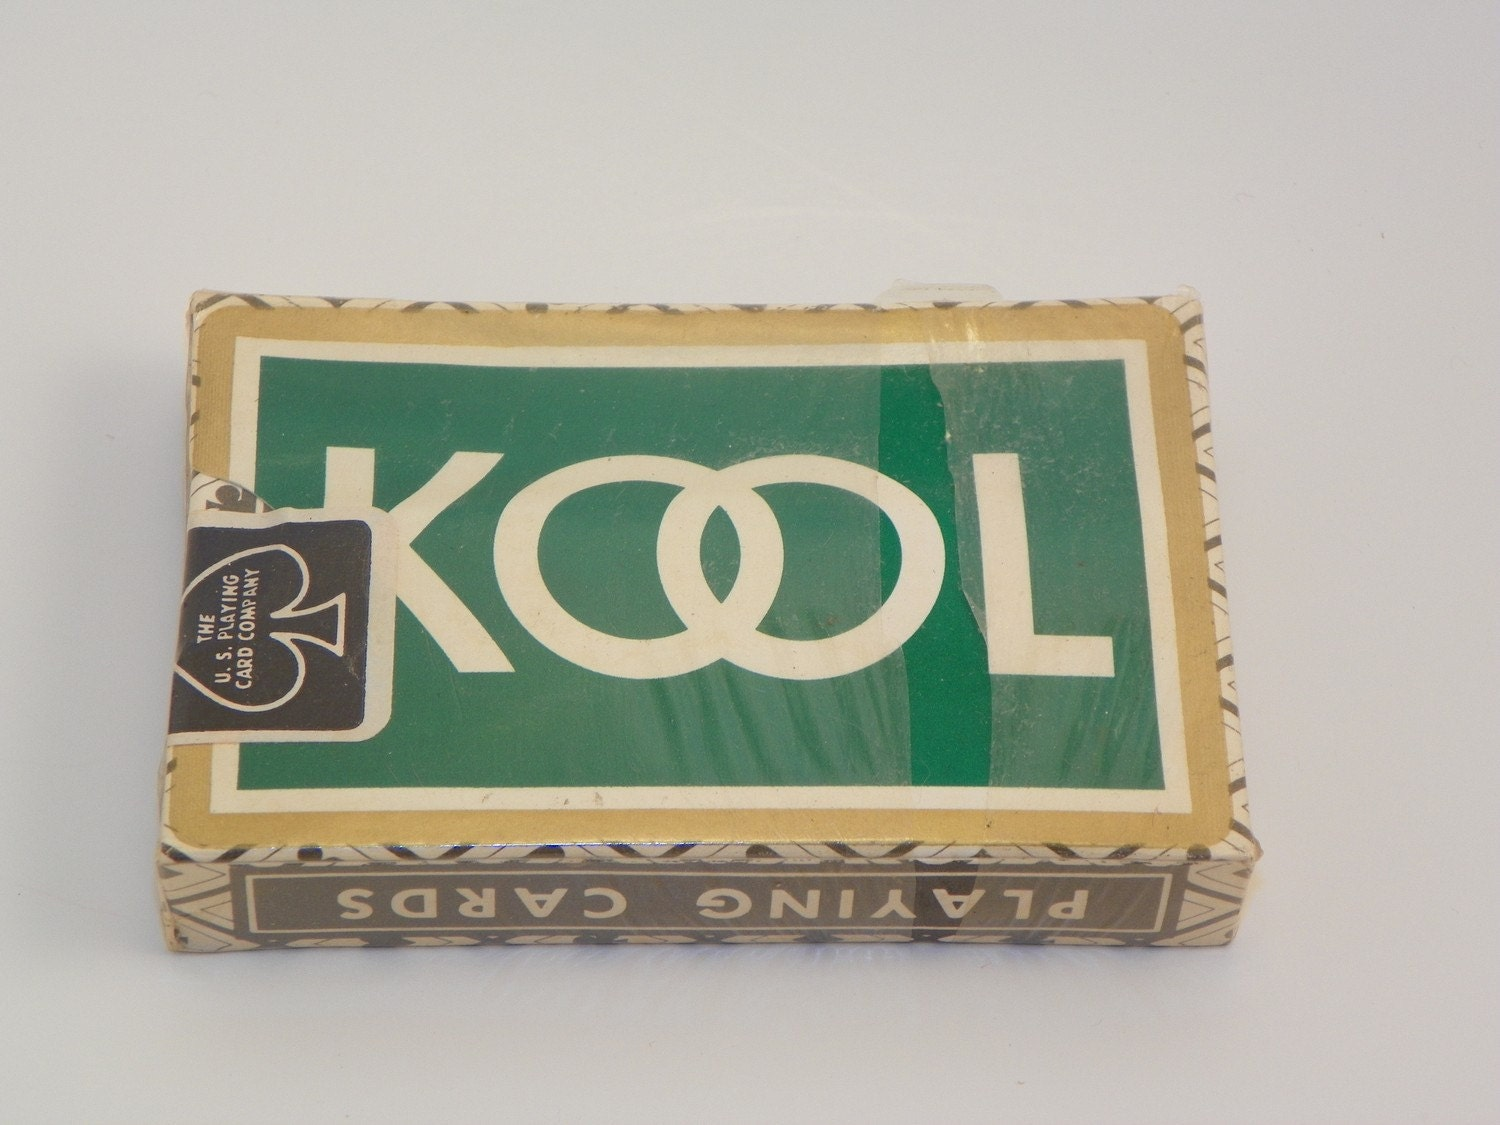 Buy Detroit cigarettes Pall Mall